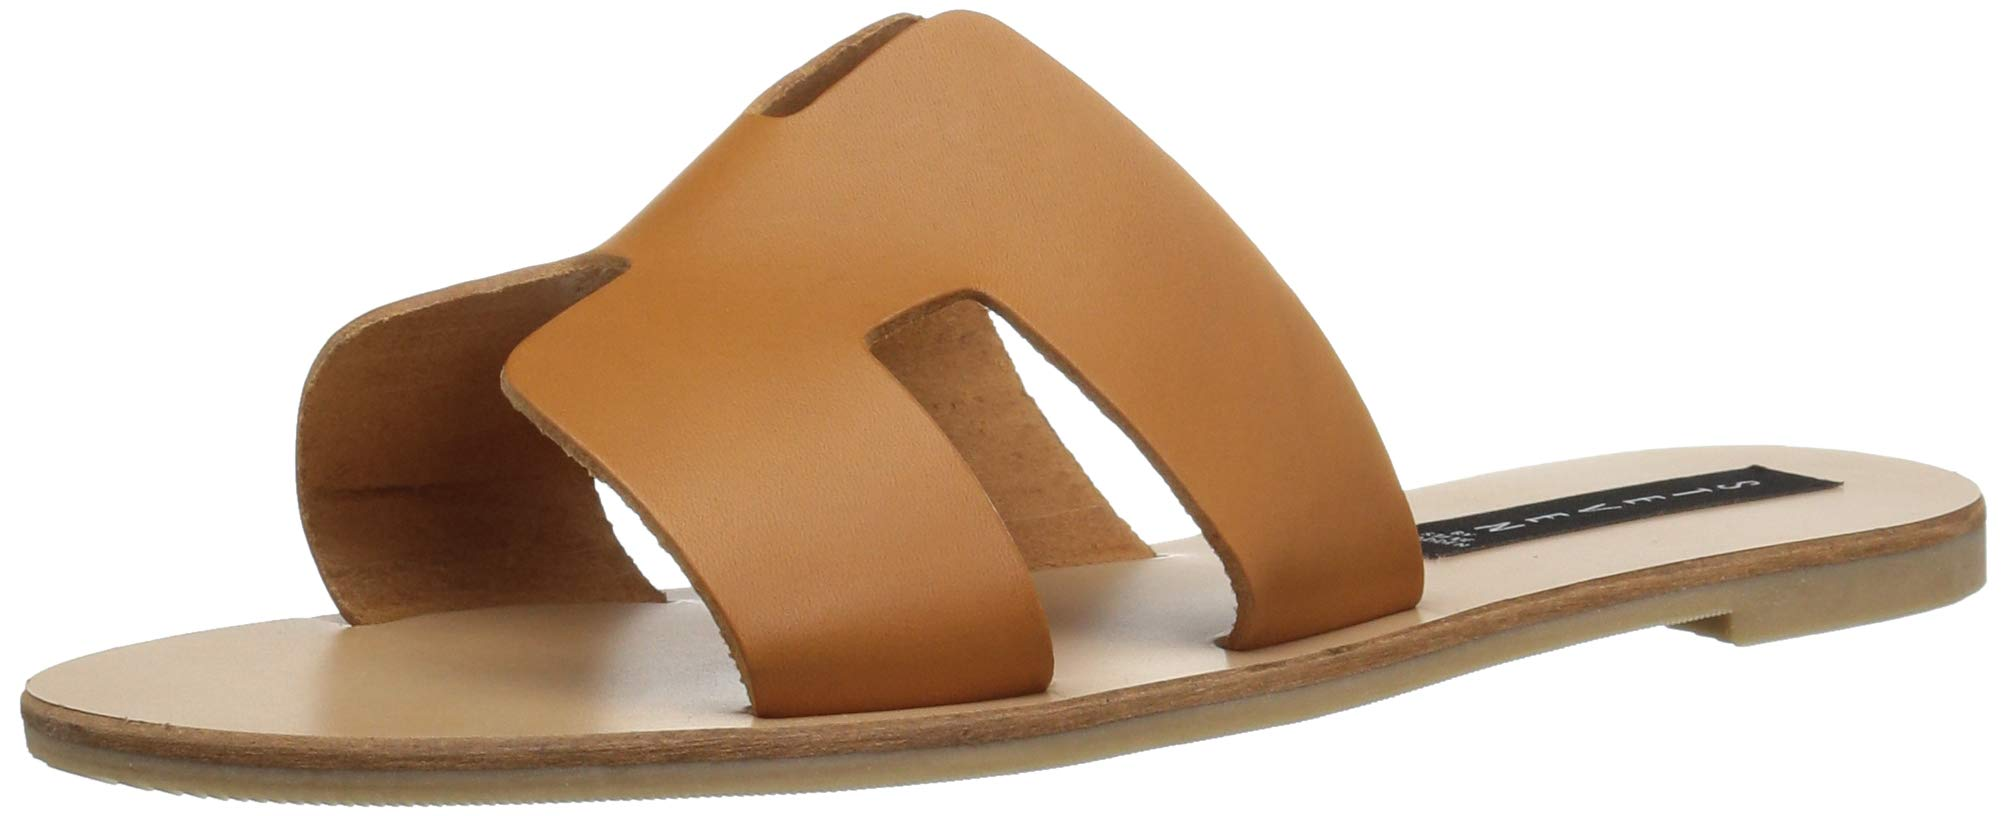 STEVEN by Steve Madden Women's Greece Flat Sandal, Cognac Leather, 8 M US by STEVEN by Steve Madden